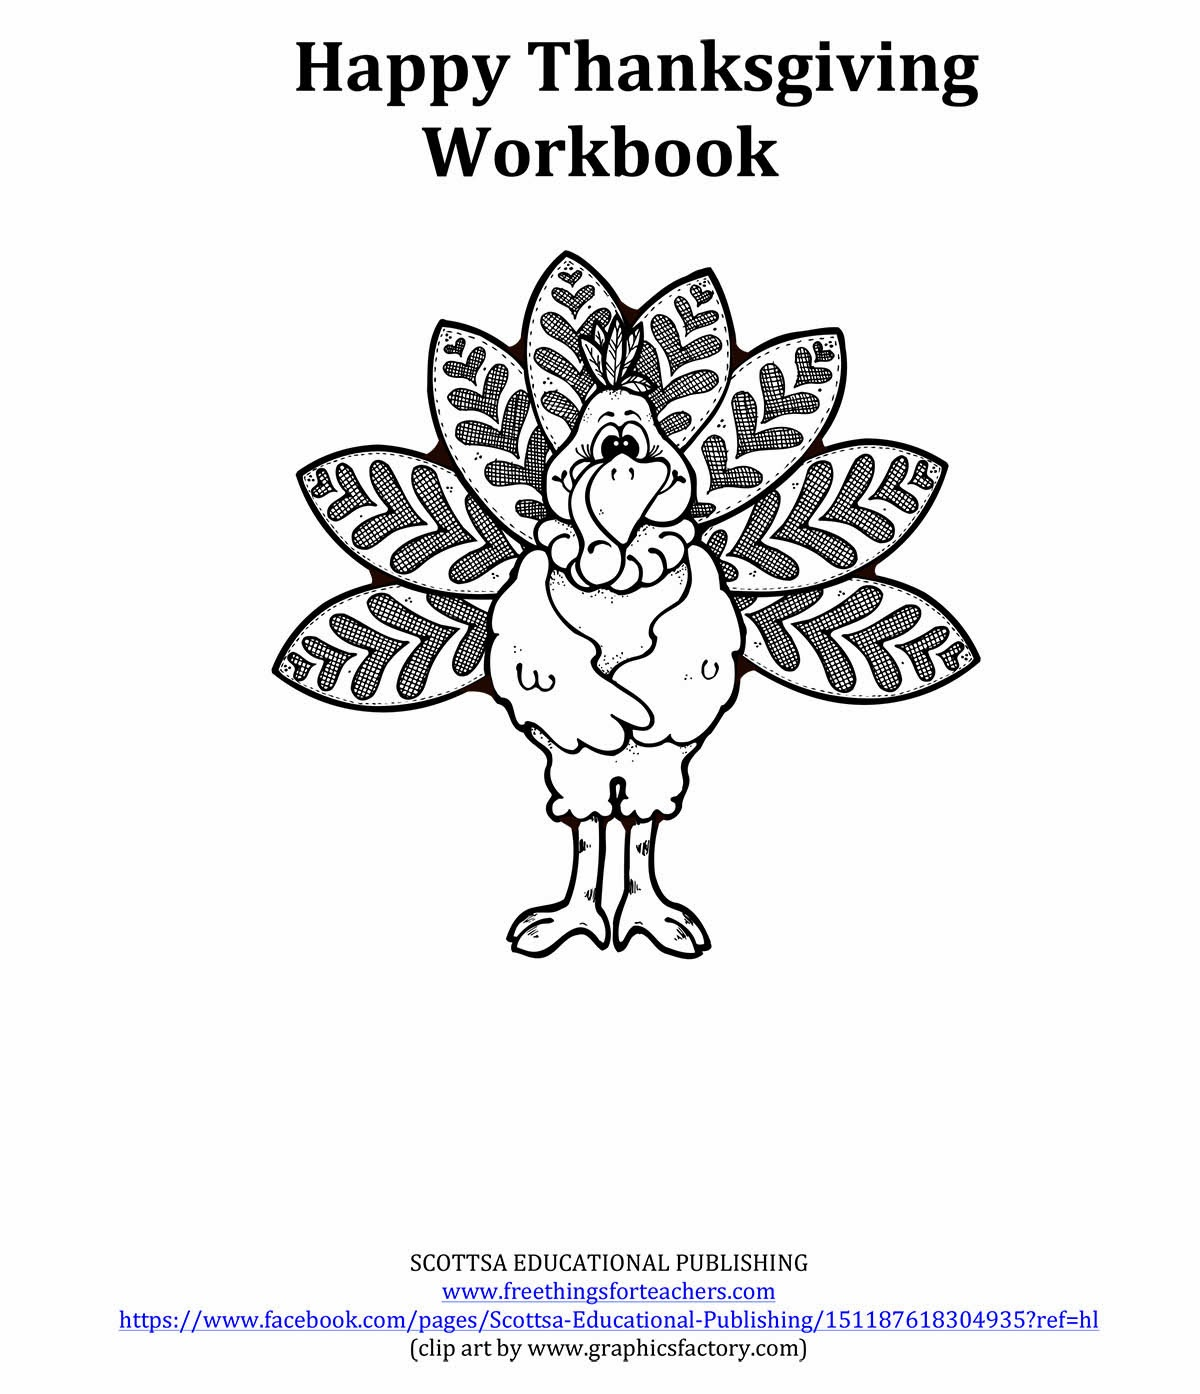 Free Things For Teachers: HAPPY THANKSGIVING WORKBOOK: The